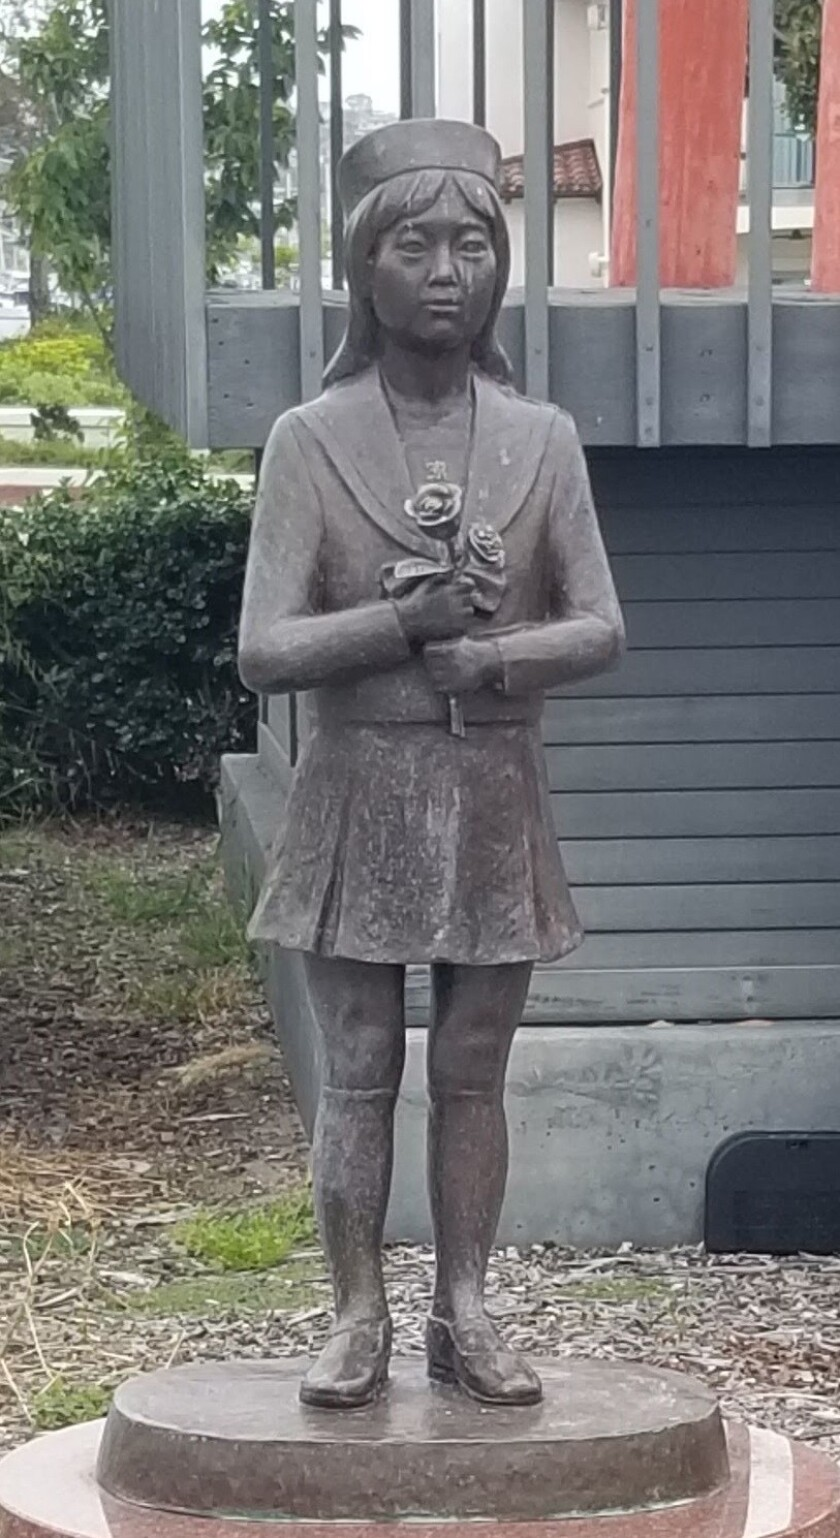 This bronze by artist Munehiro Komeno was presented to the citizens of San Diego by the same Japanese city that presented San Diego with the bell (top right). The sculpture represents eternal friendship and commemorates the 150th anniversary of the Japanese city's port opening. (Answer: Girl in Red Shoes)